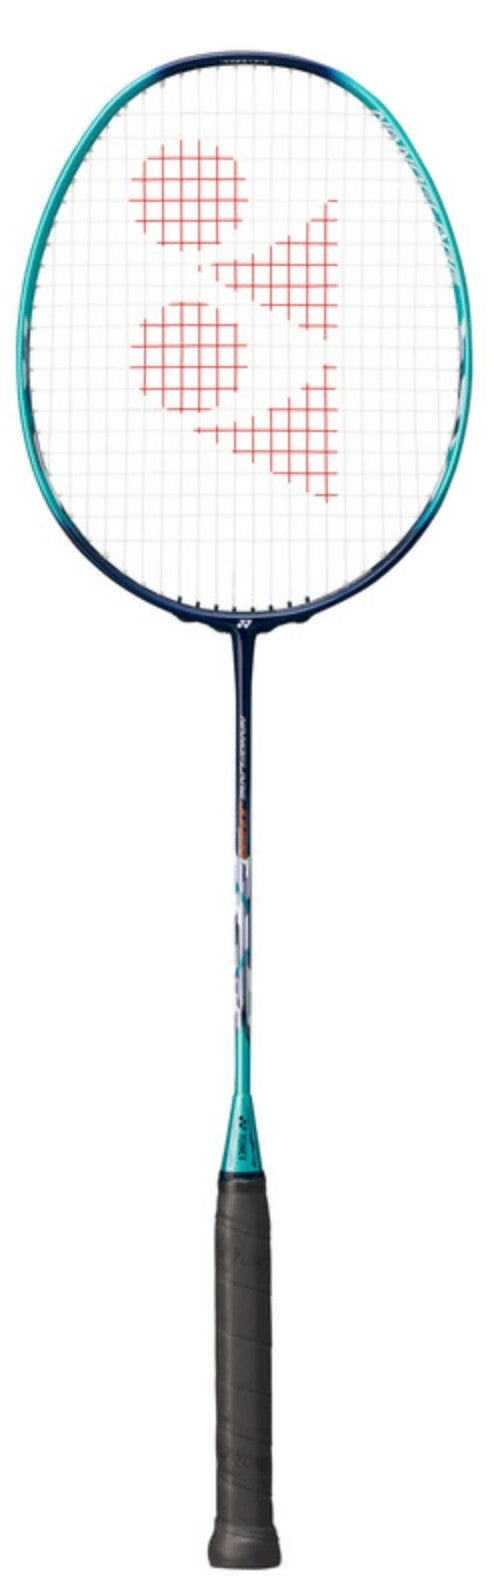 Yonex Nanoflare Junior badminton racket for toddlers - SportsArena